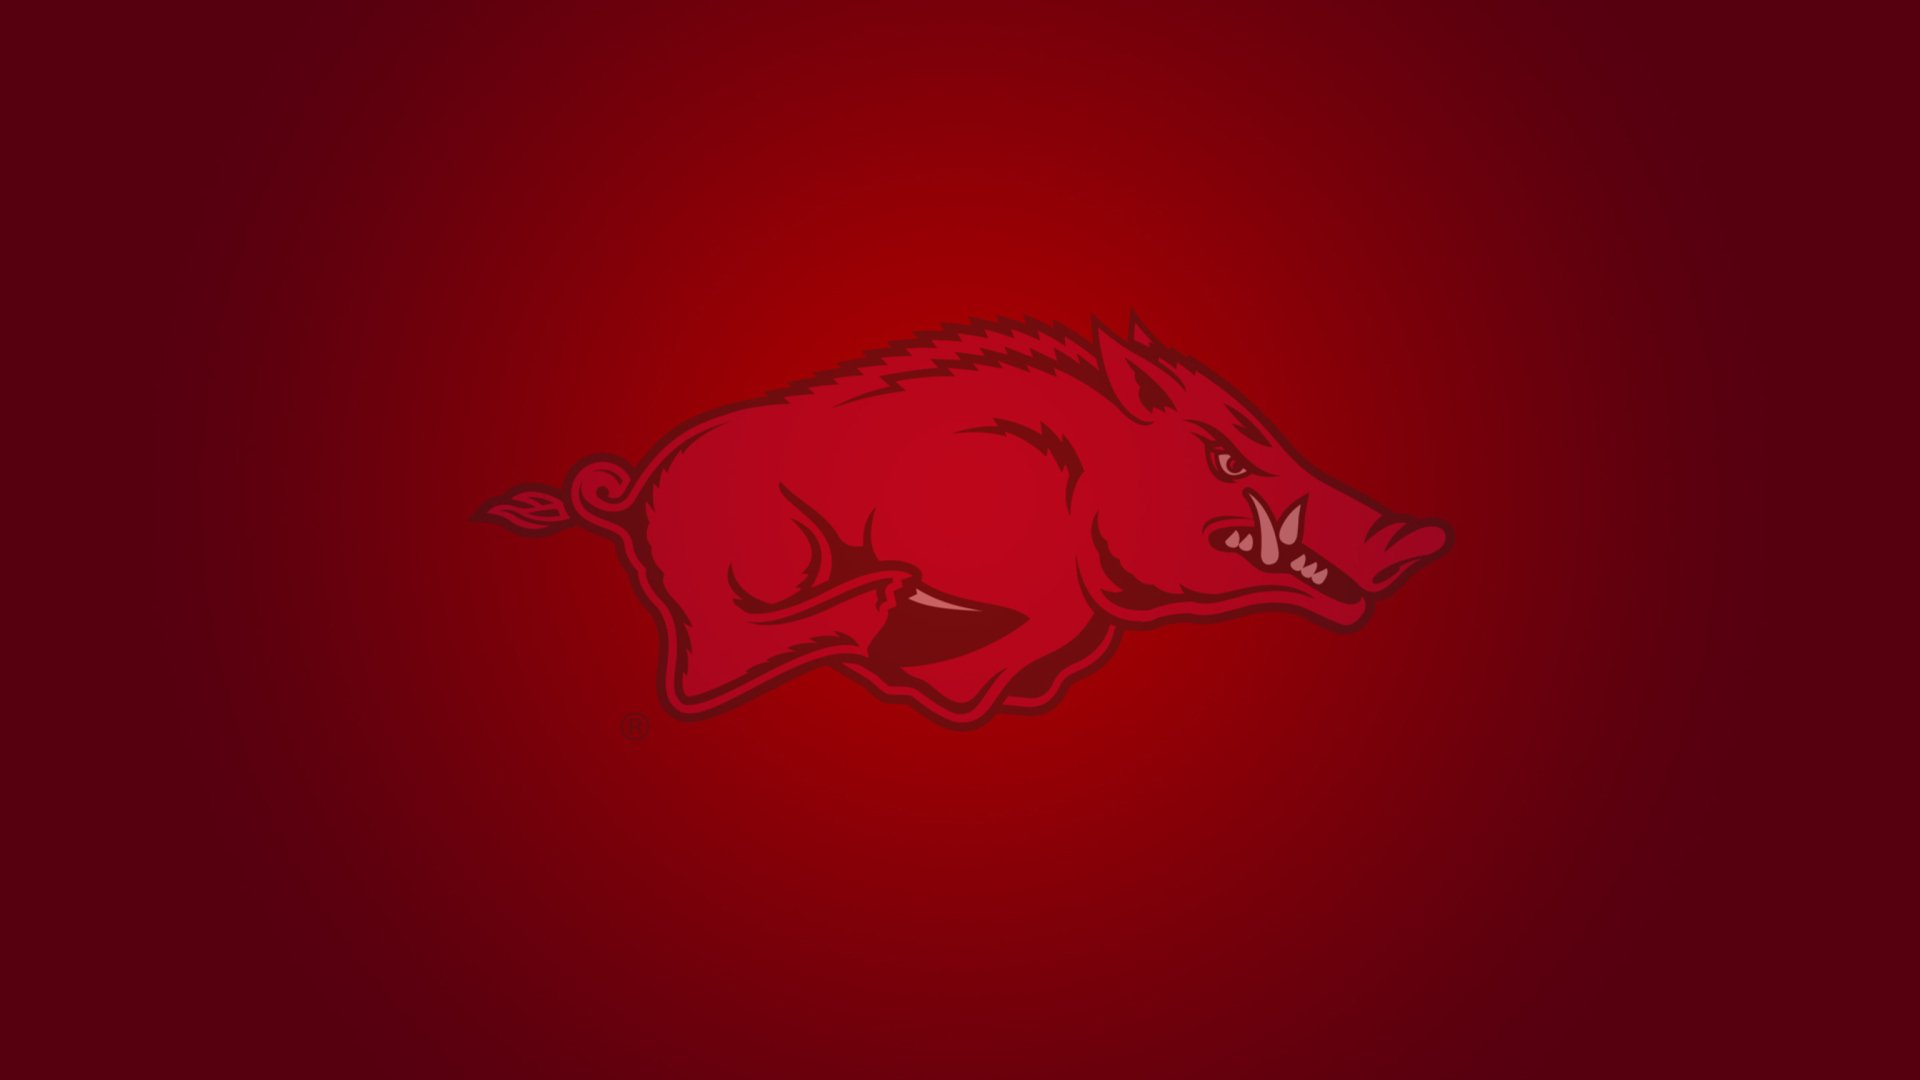 razorback wallpaper for android